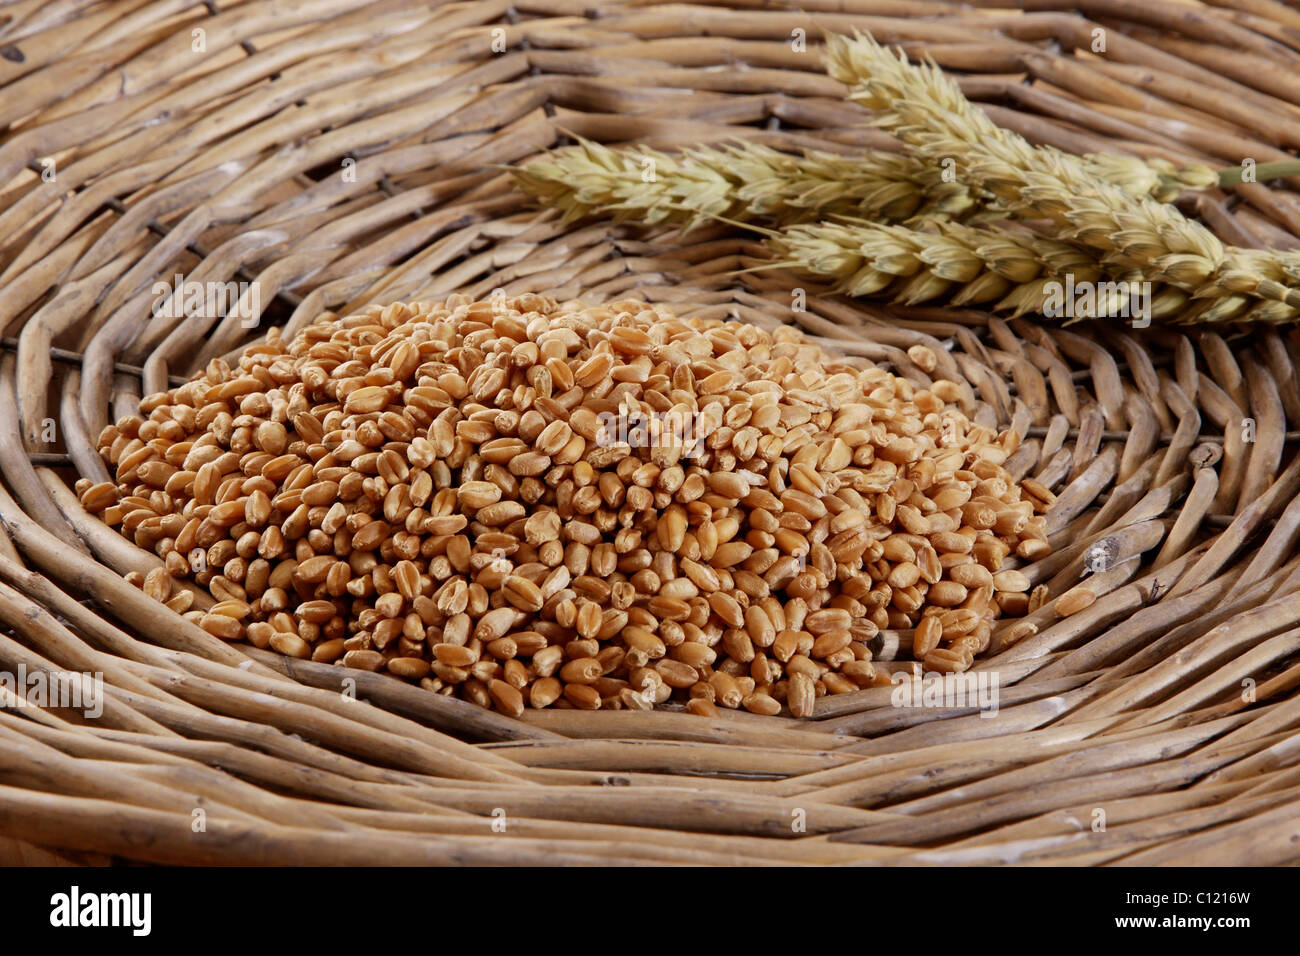 Wheat kernels (Triticum) with wheat ears in a woven basket - Stock Image